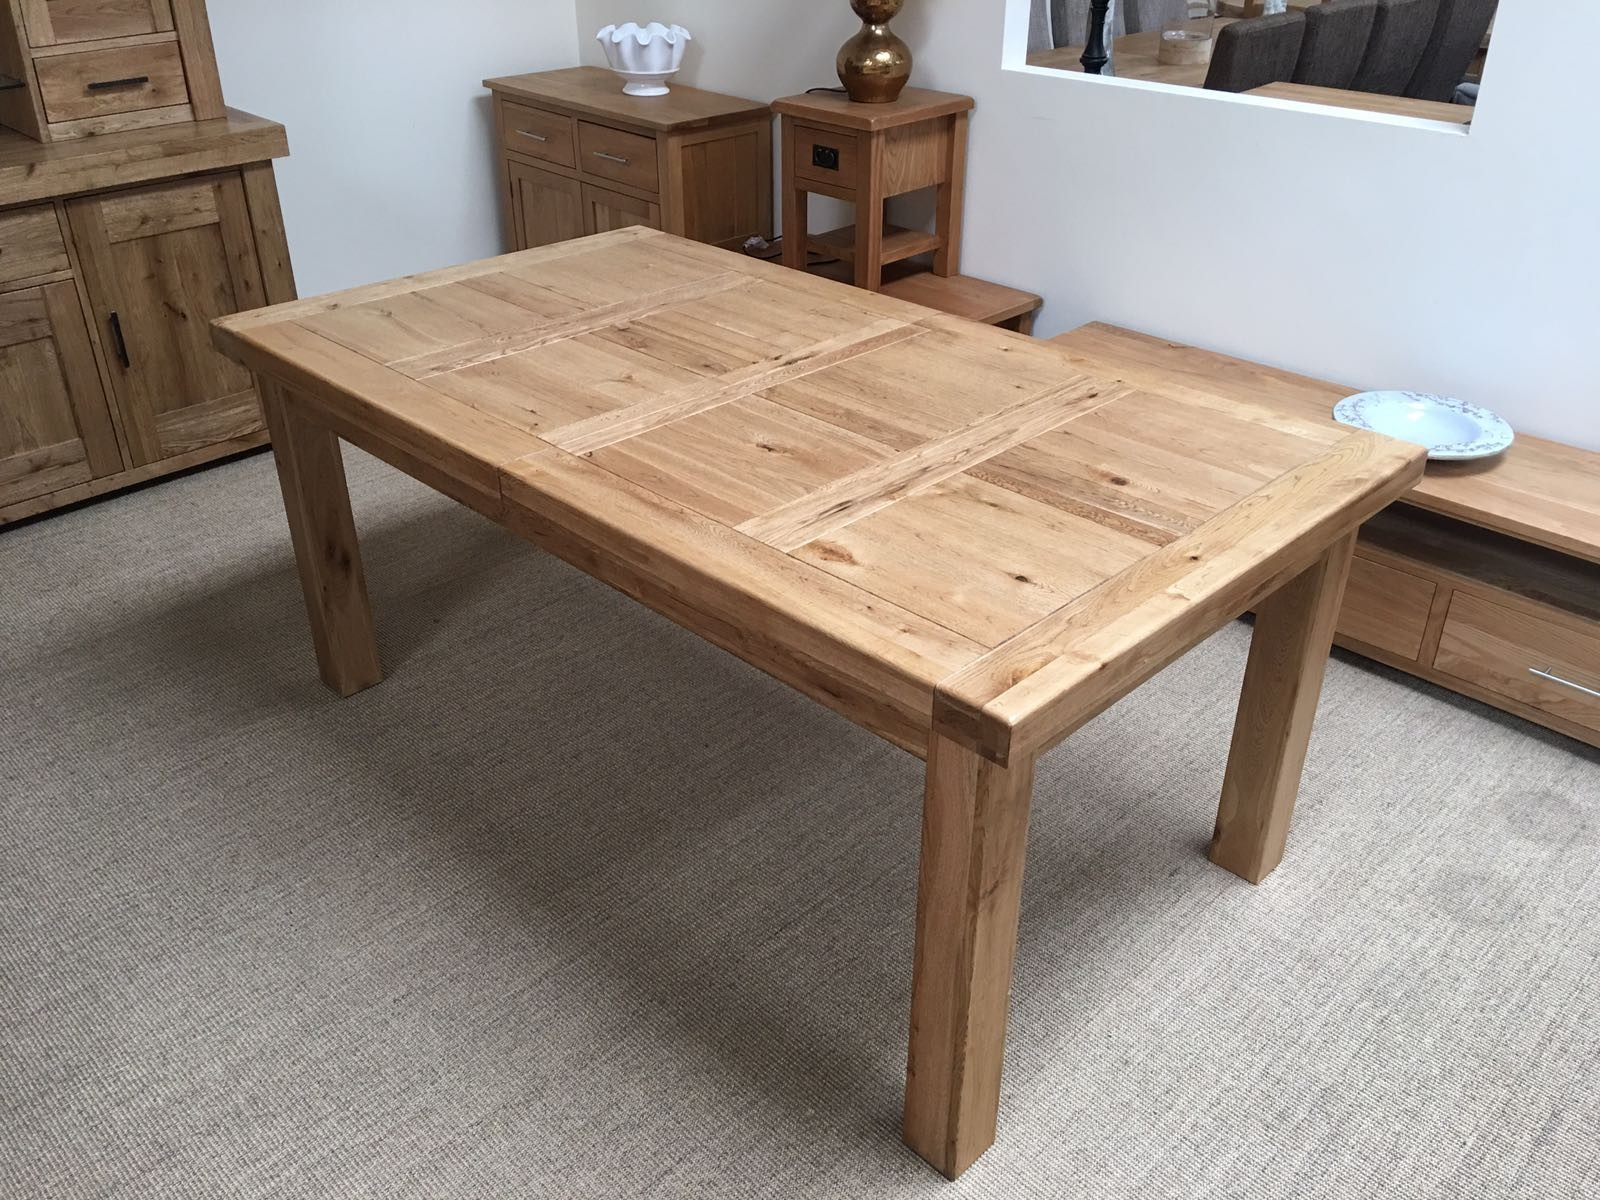 extendable dining table ... Oakita Oxford 6ft table not extended ... LXMASVW